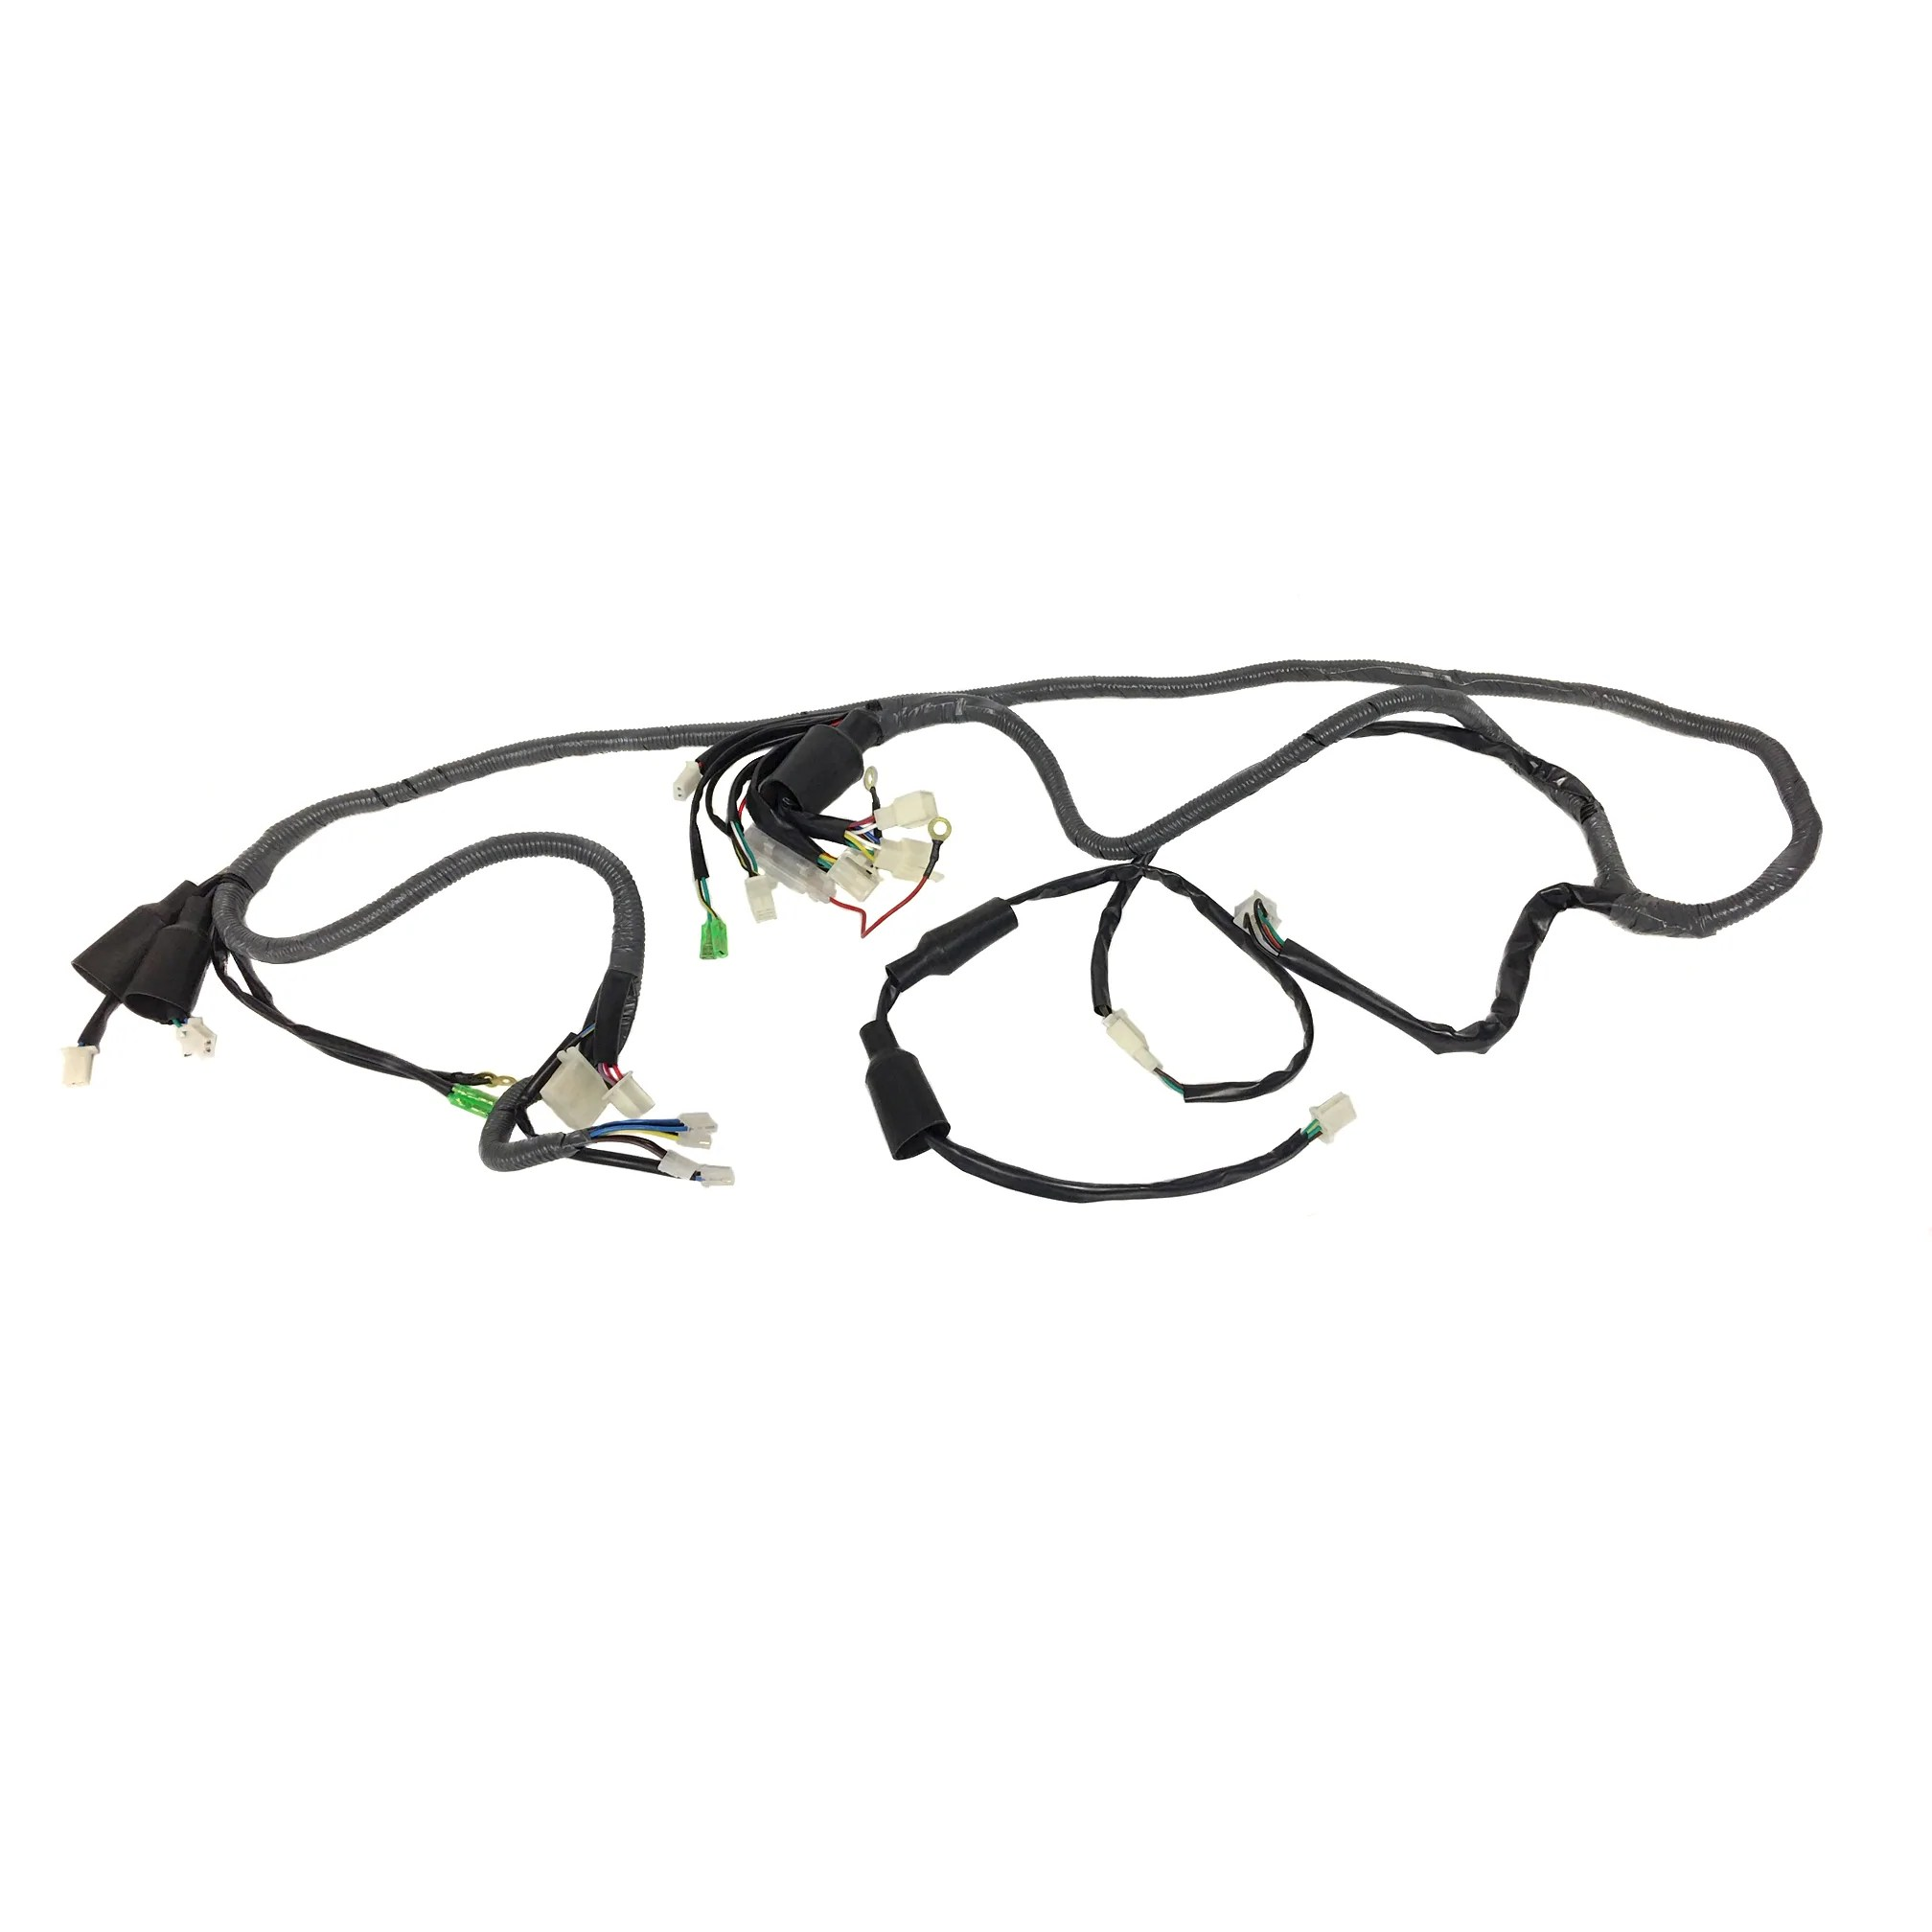 wiring harness for tao tao 110cc gk110 go kart vmc chinese parts  [ 2016 x 2016 Pixel ]